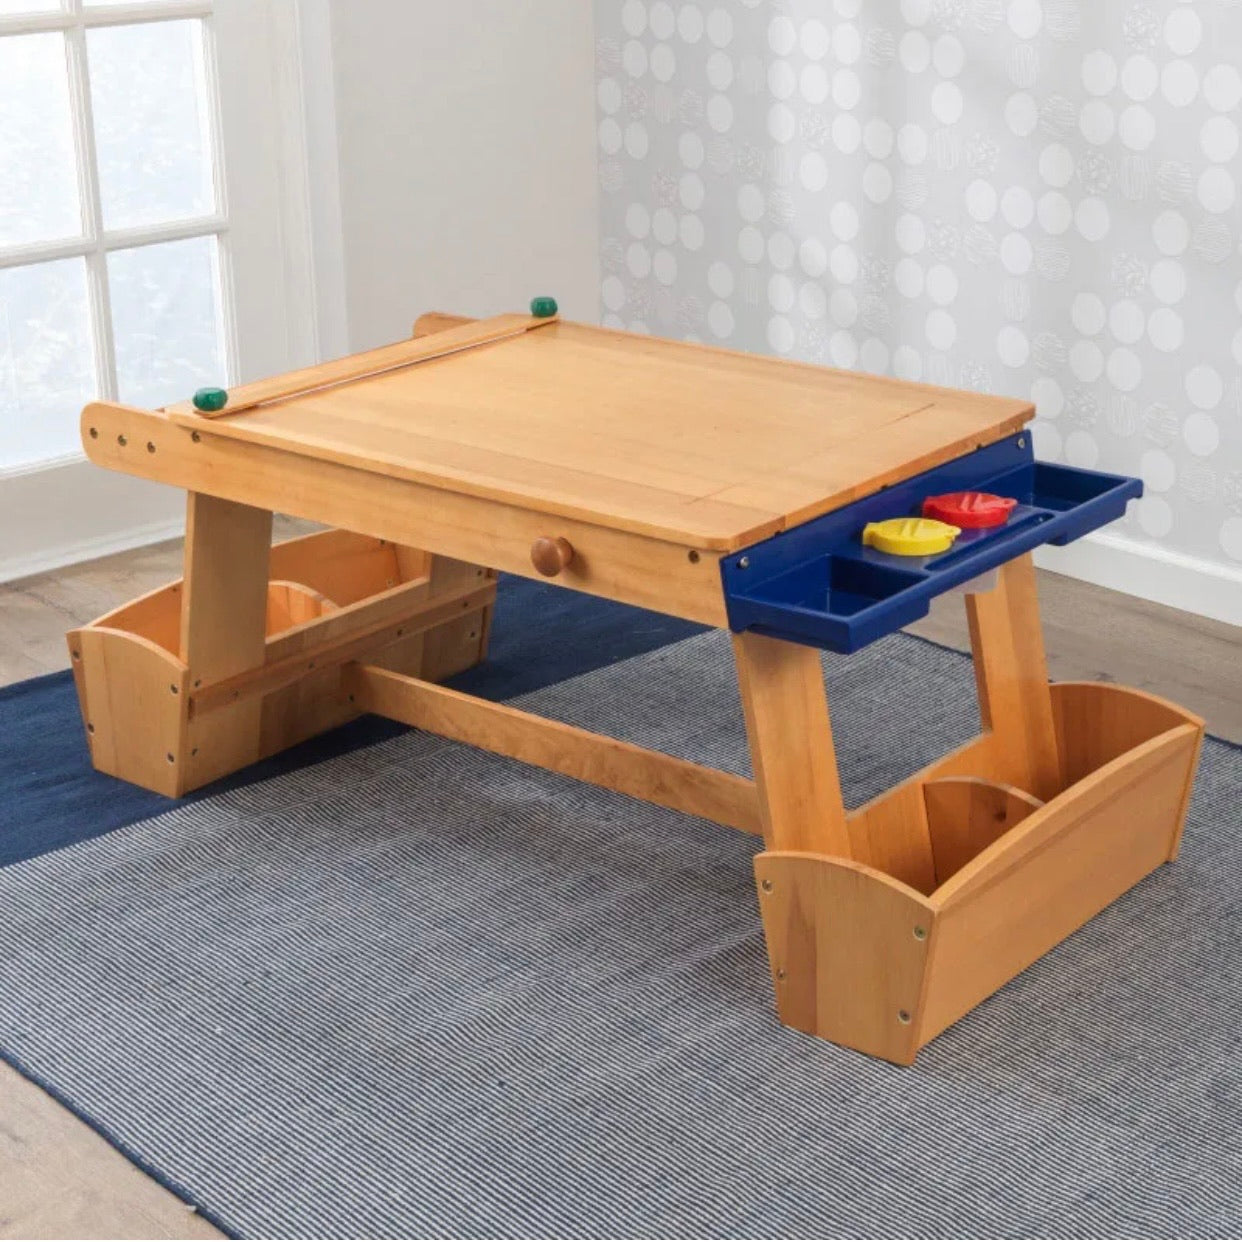 KidKraft Art Table with Drying Rack & Storage